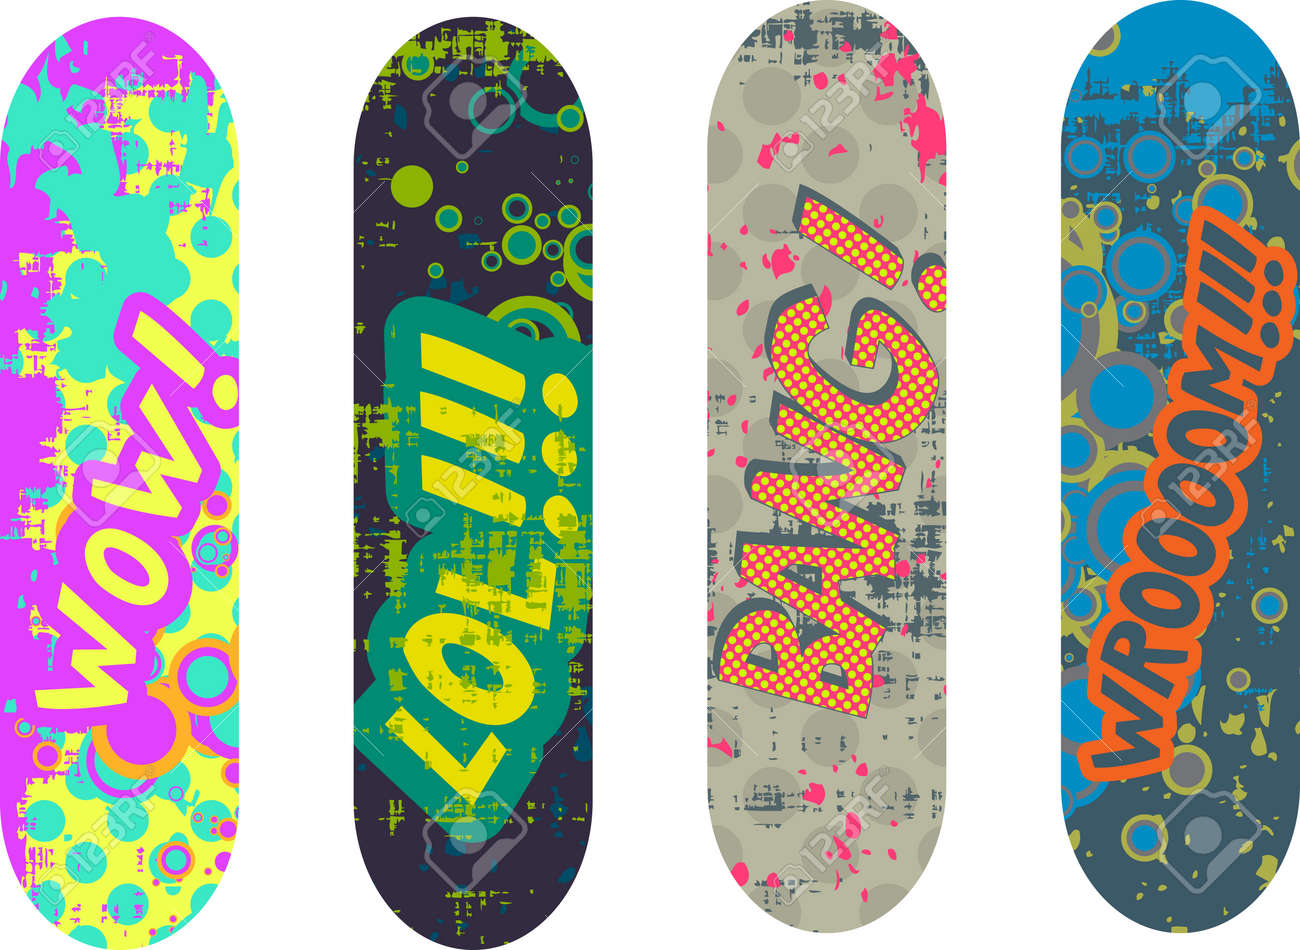 skateboard design pack with cartoon style effects - 31900208